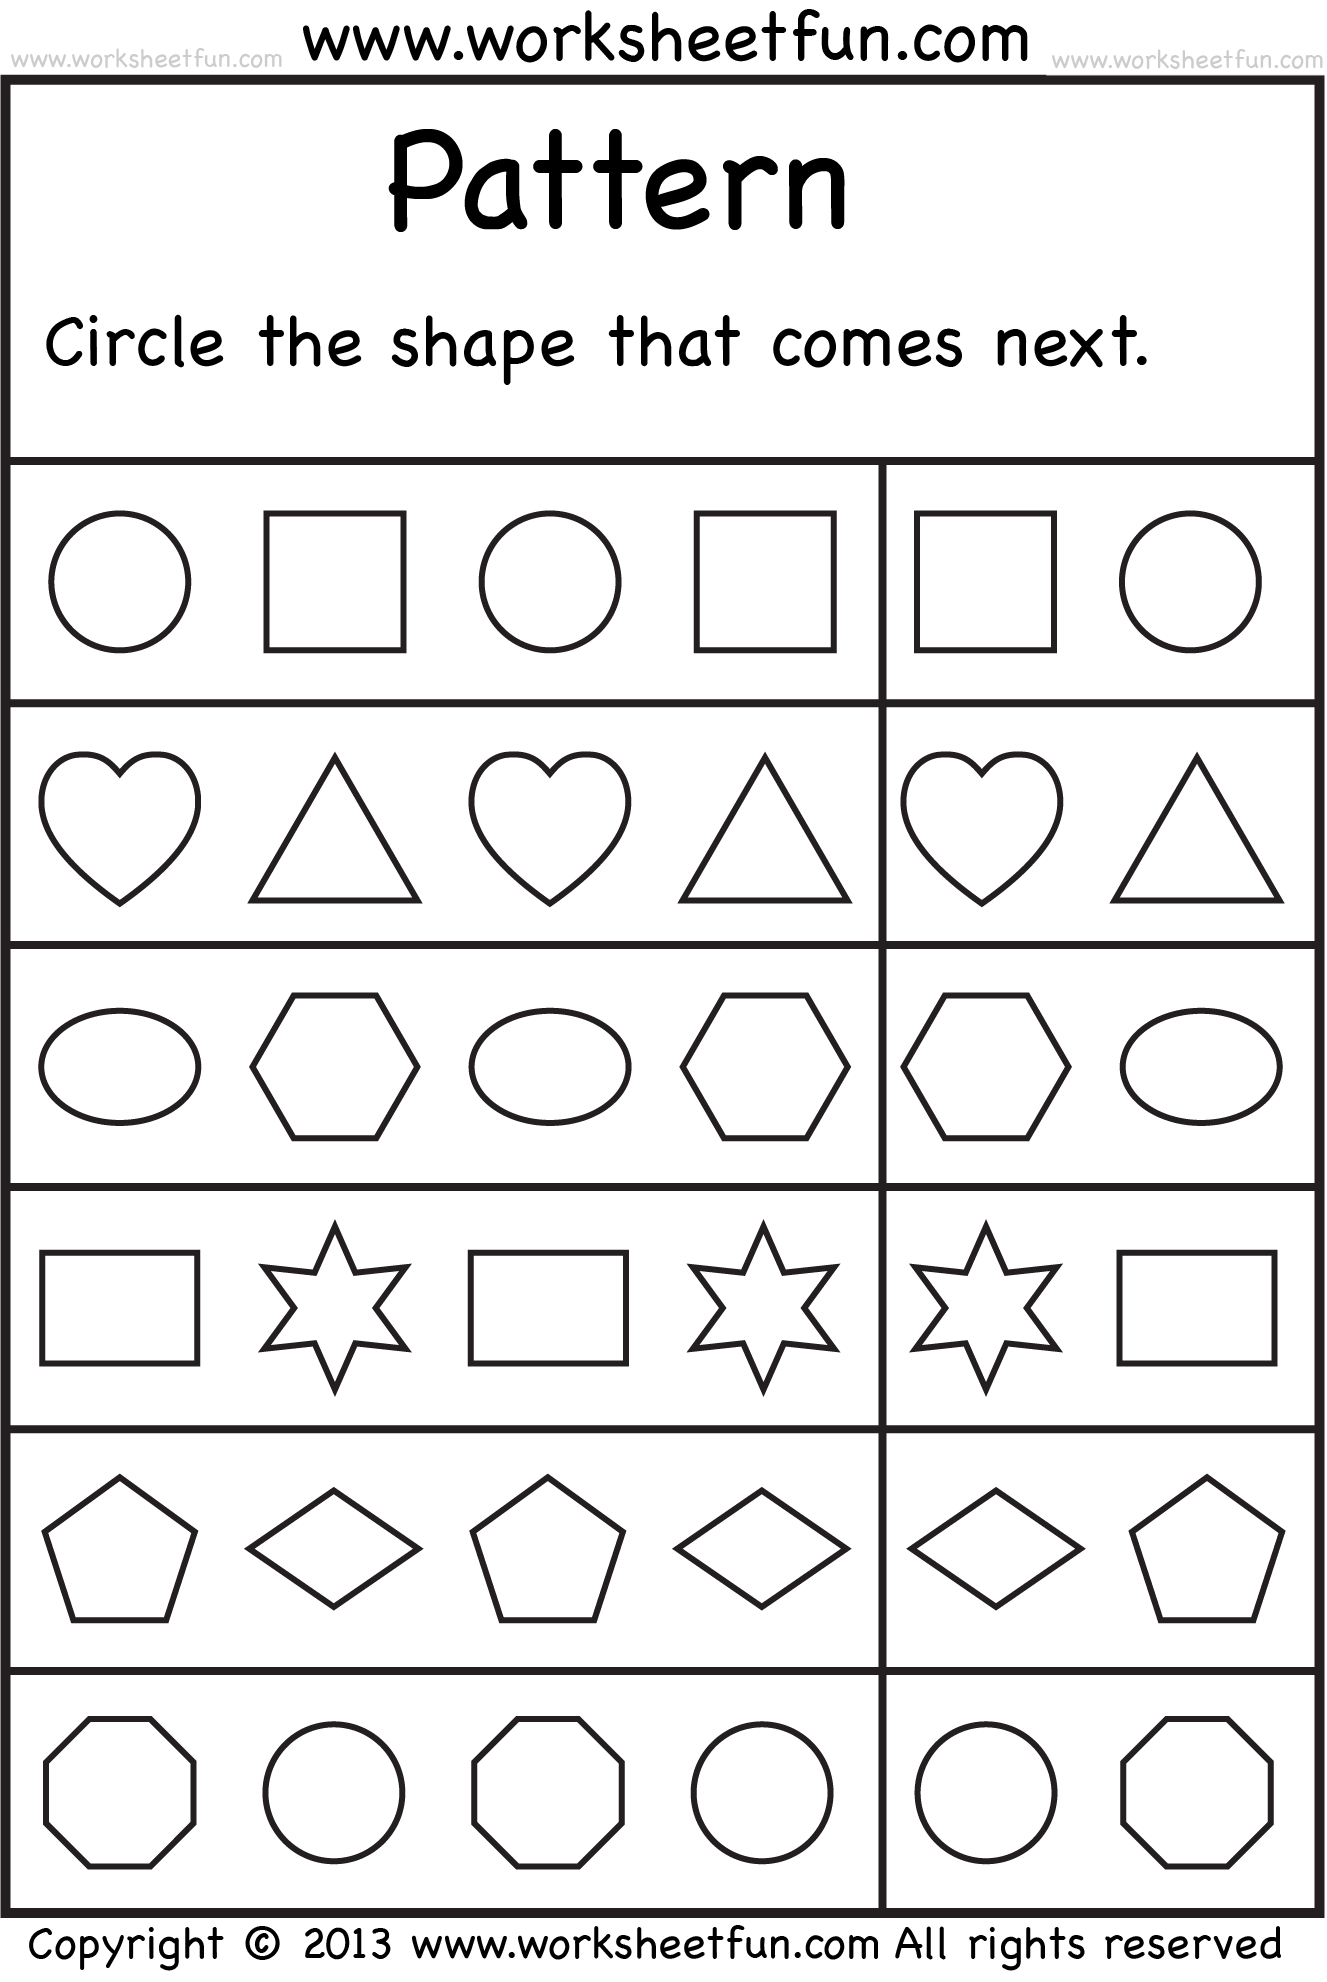 Weirdmailus  Pretty  Images About School Worksheets On Pinterest  Number Words  With Fascinating  Images About School Worksheets On Pinterest  Number Words Alphabet Worksheets And Free Printable Kindergarten Worksheets With Attractive Solving Systems Of Equations By Graphing Worksheet Algebra  Also Writing Poetry Worksheets In Addition Multiplication As Repeated Addition Worksheet And Shape Sort Worksheet As Well As Estimation Word Problems Worksheets Additionally Scarlet Ibis Worksheet From Pinterestcom With Weirdmailus  Fascinating  Images About School Worksheets On Pinterest  Number Words  With Attractive  Images About School Worksheets On Pinterest  Number Words Alphabet Worksheets And Free Printable Kindergarten Worksheets And Pretty Solving Systems Of Equations By Graphing Worksheet Algebra  Also Writing Poetry Worksheets In Addition Multiplication As Repeated Addition Worksheet From Pinterestcom